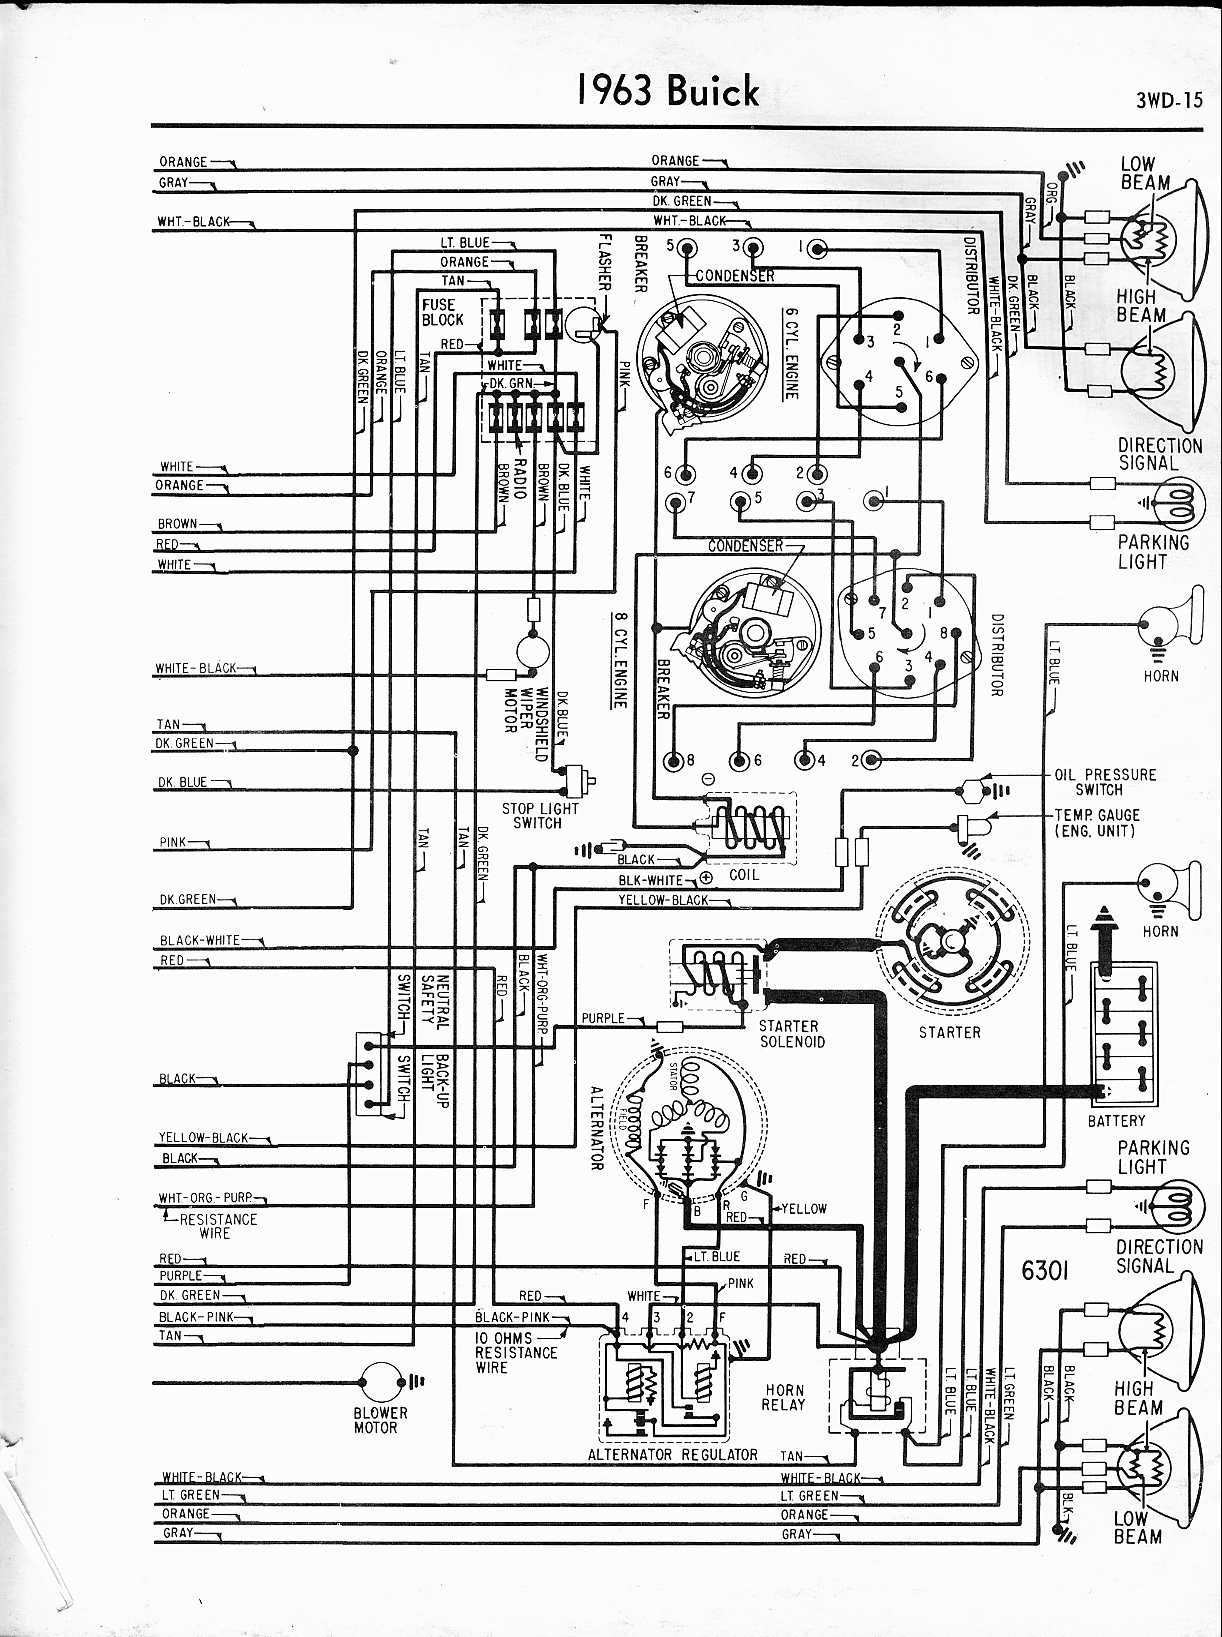 69 buick ignition wiring diy wiring diagrams u2022 rh curlybracket co 70 Buick GS 69 Buick GS